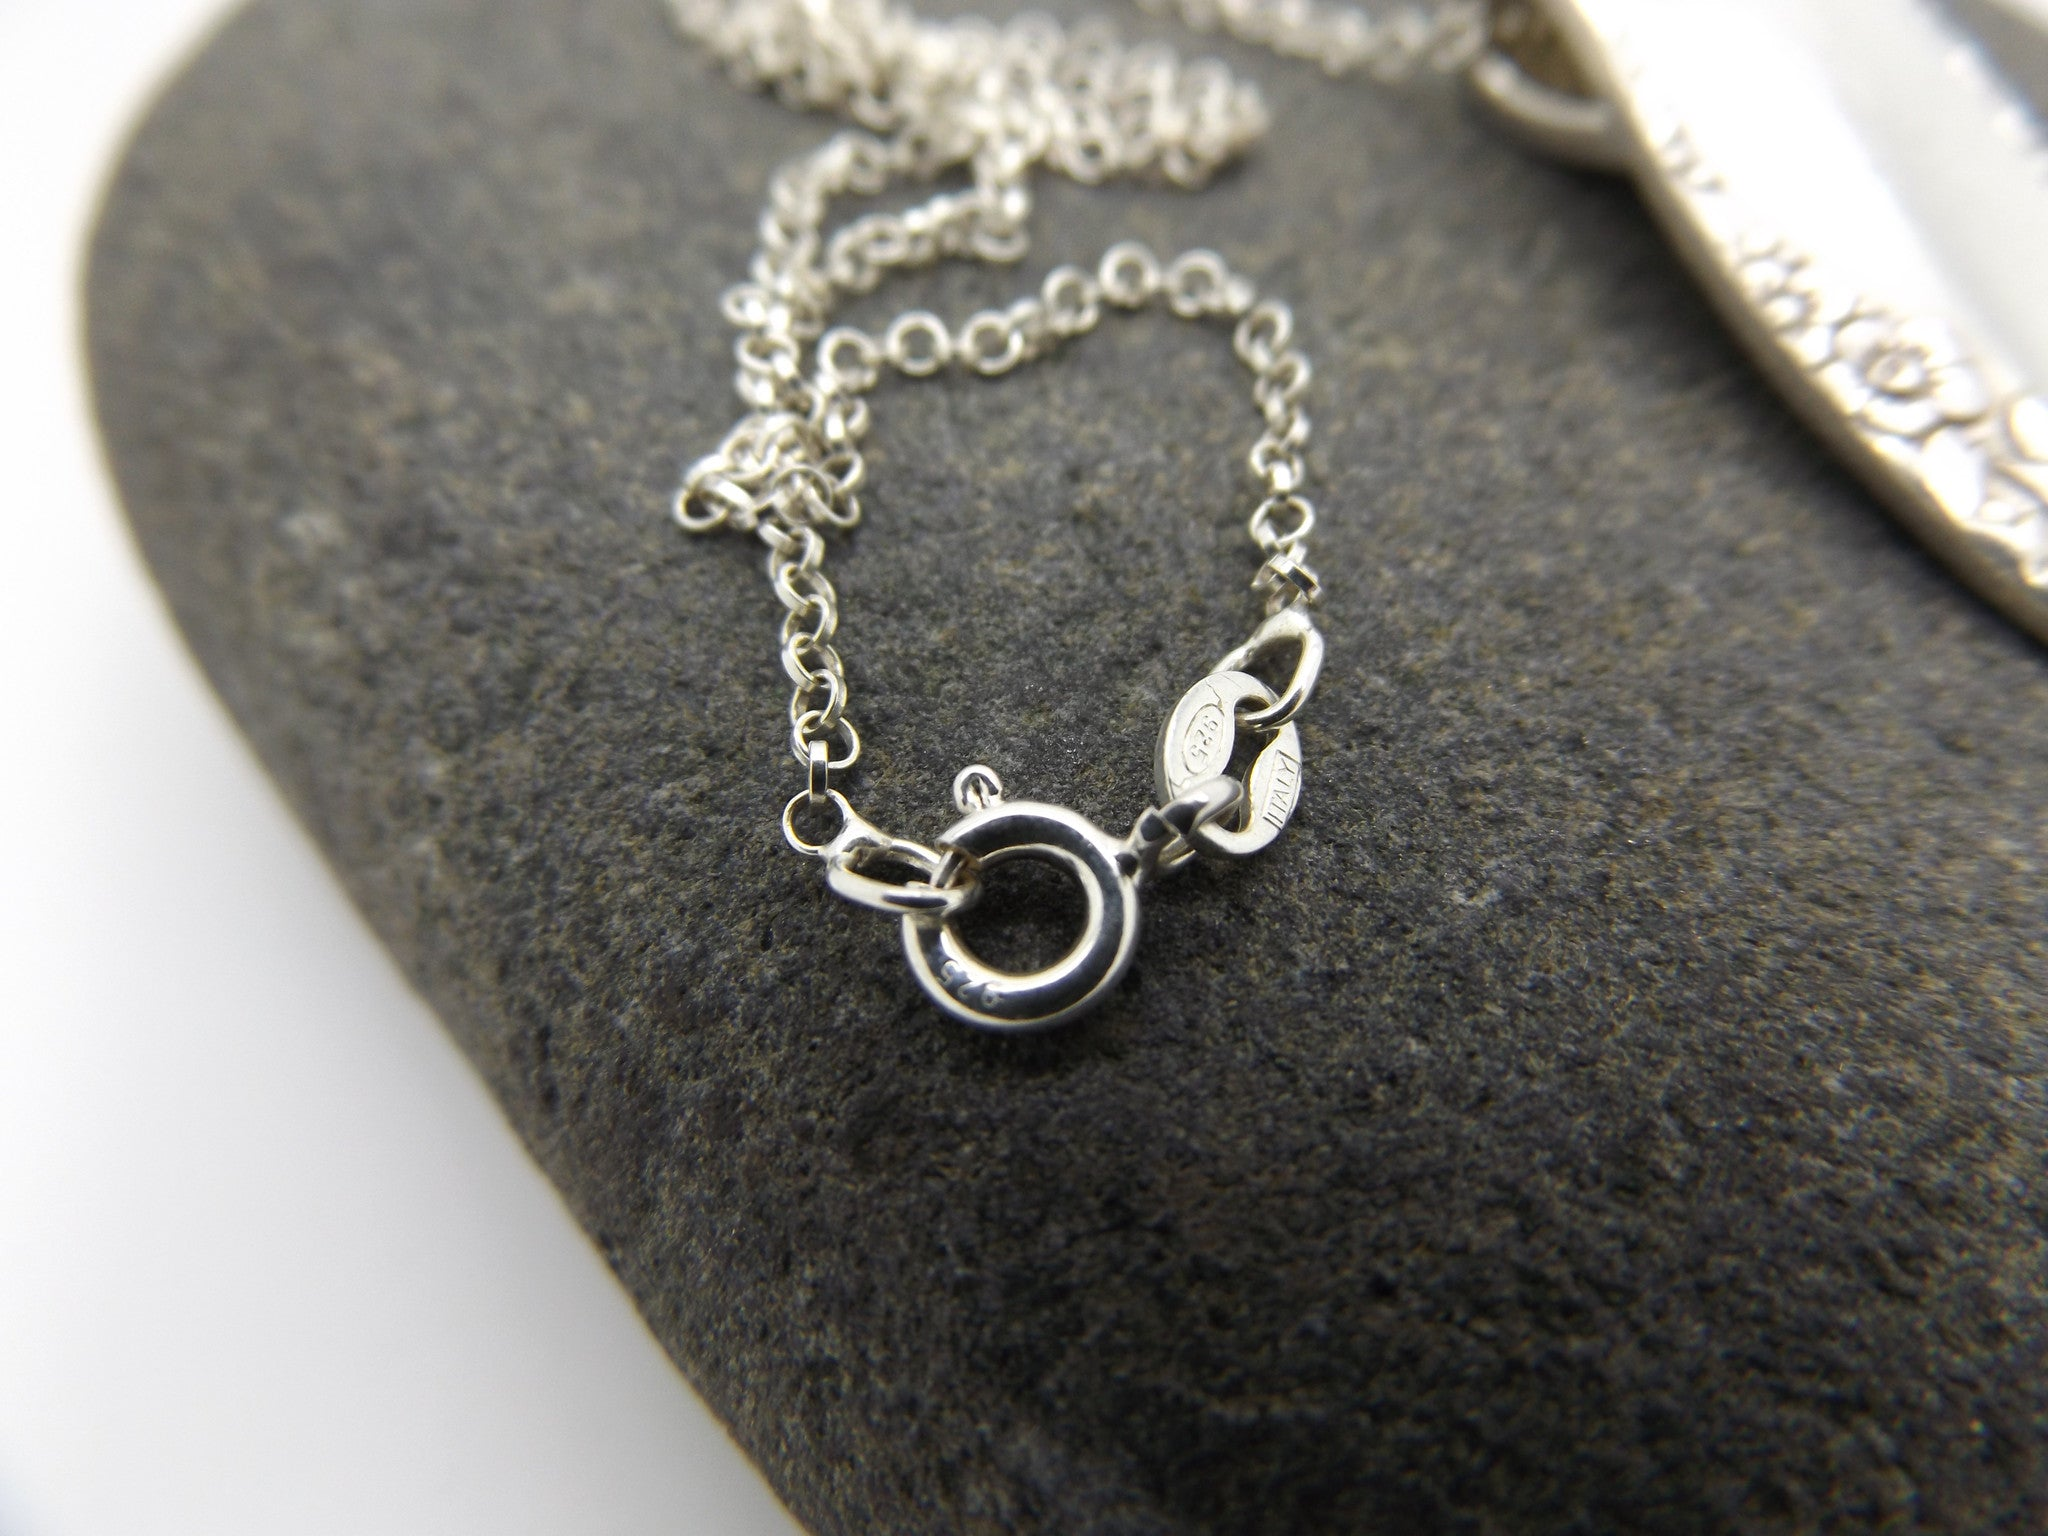 Spoon handle pendant upon sterling silver chain